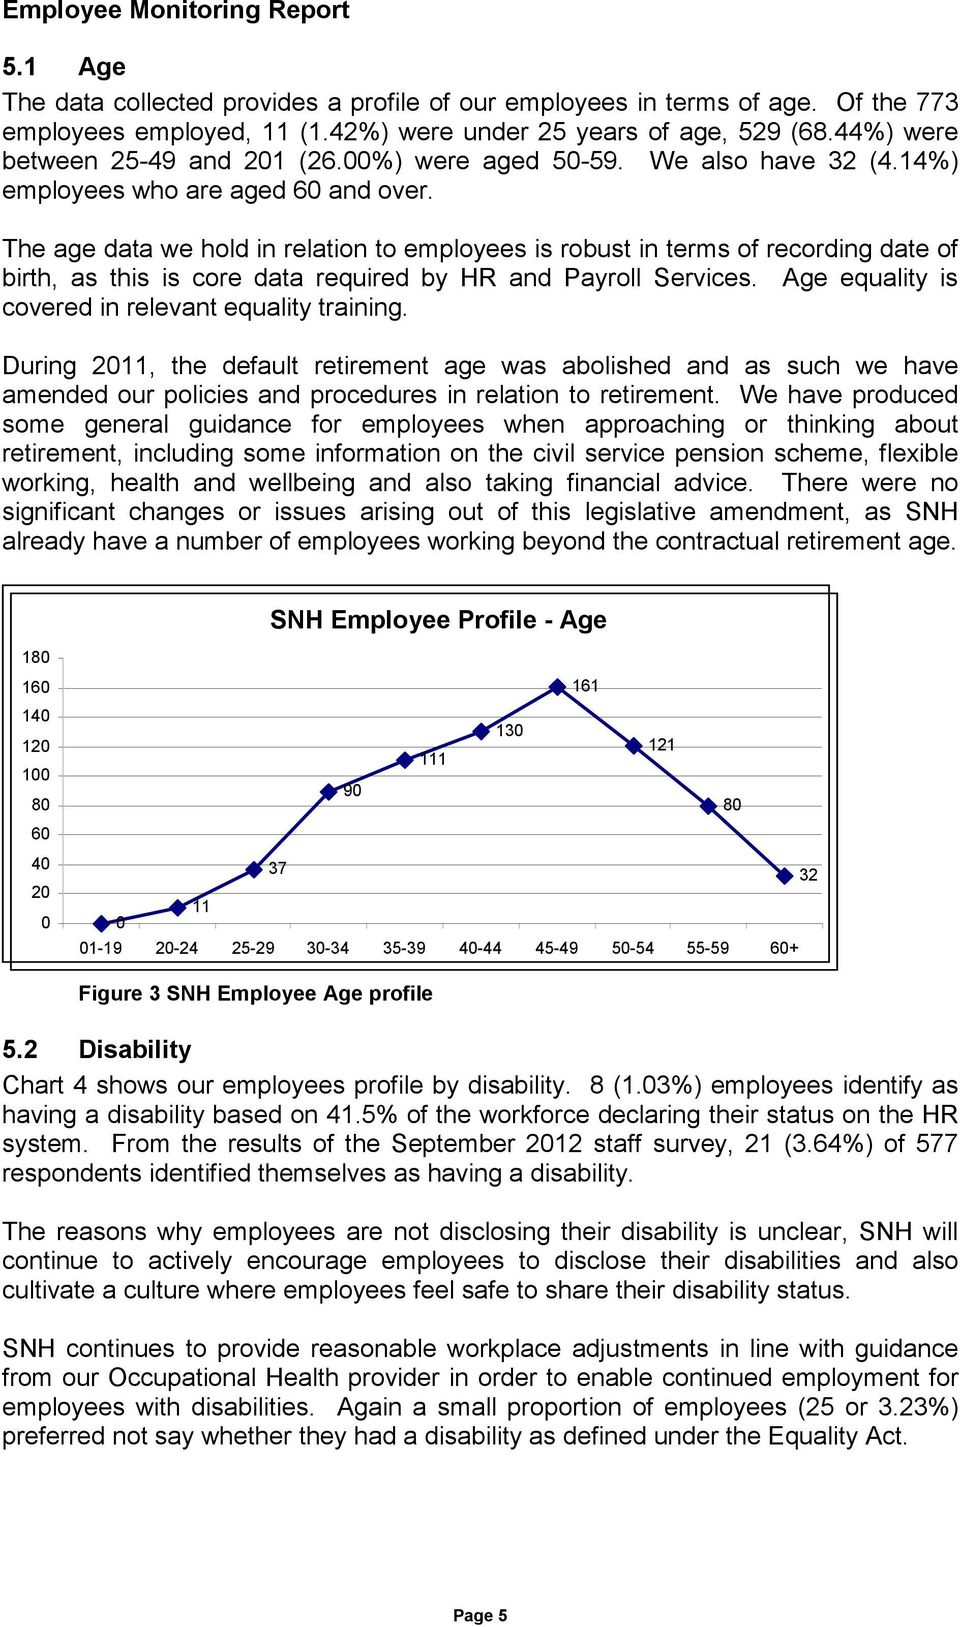 The age data we hold in relation to employees is robust in terms of recording date of birth, as this is core data required by HR and Payroll Services.